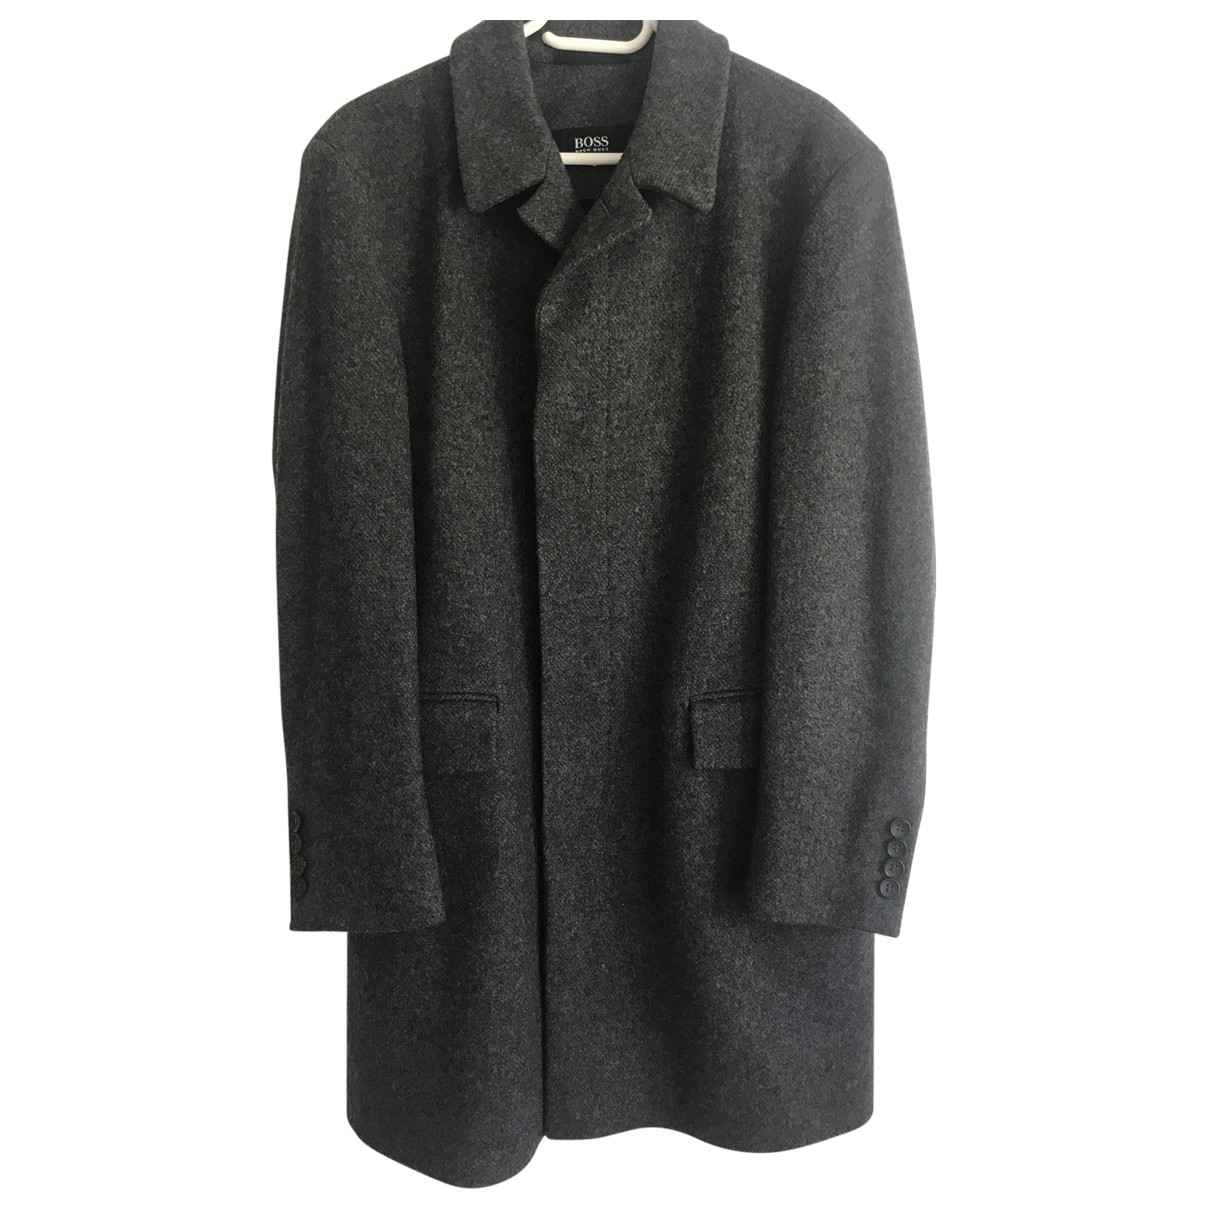 Boss \N Grey Wool coat  for Men 48 FR